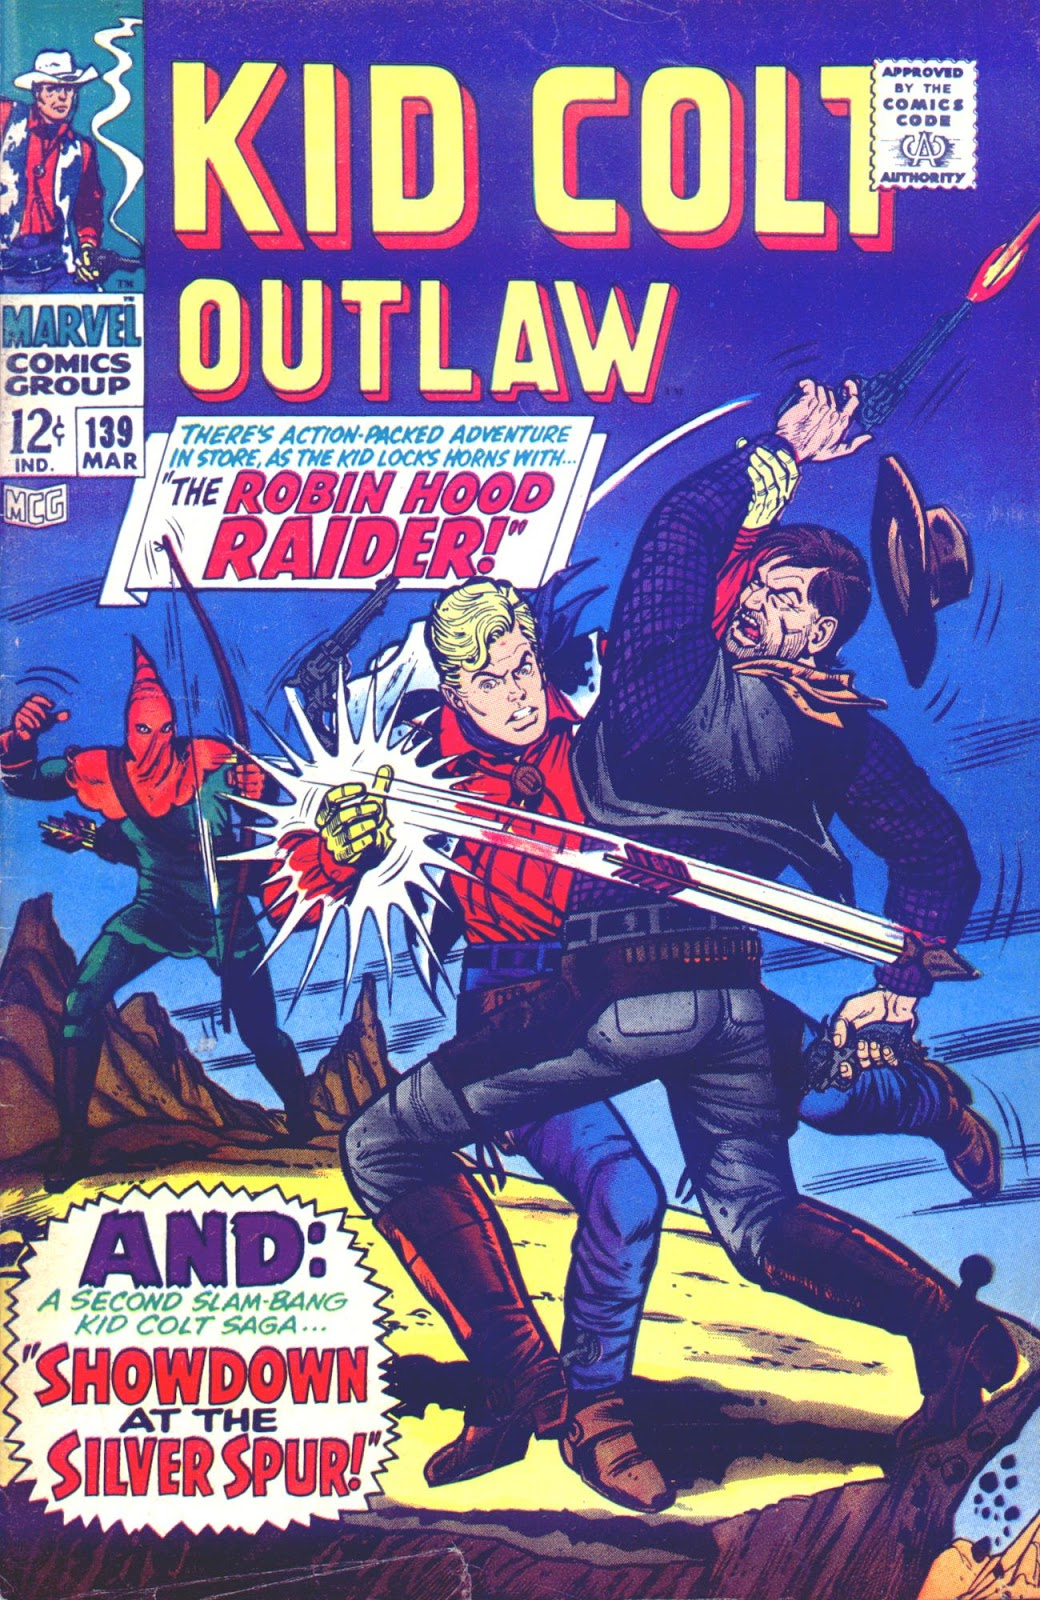 Kid Colt Outlaw issue 139 - Page 1